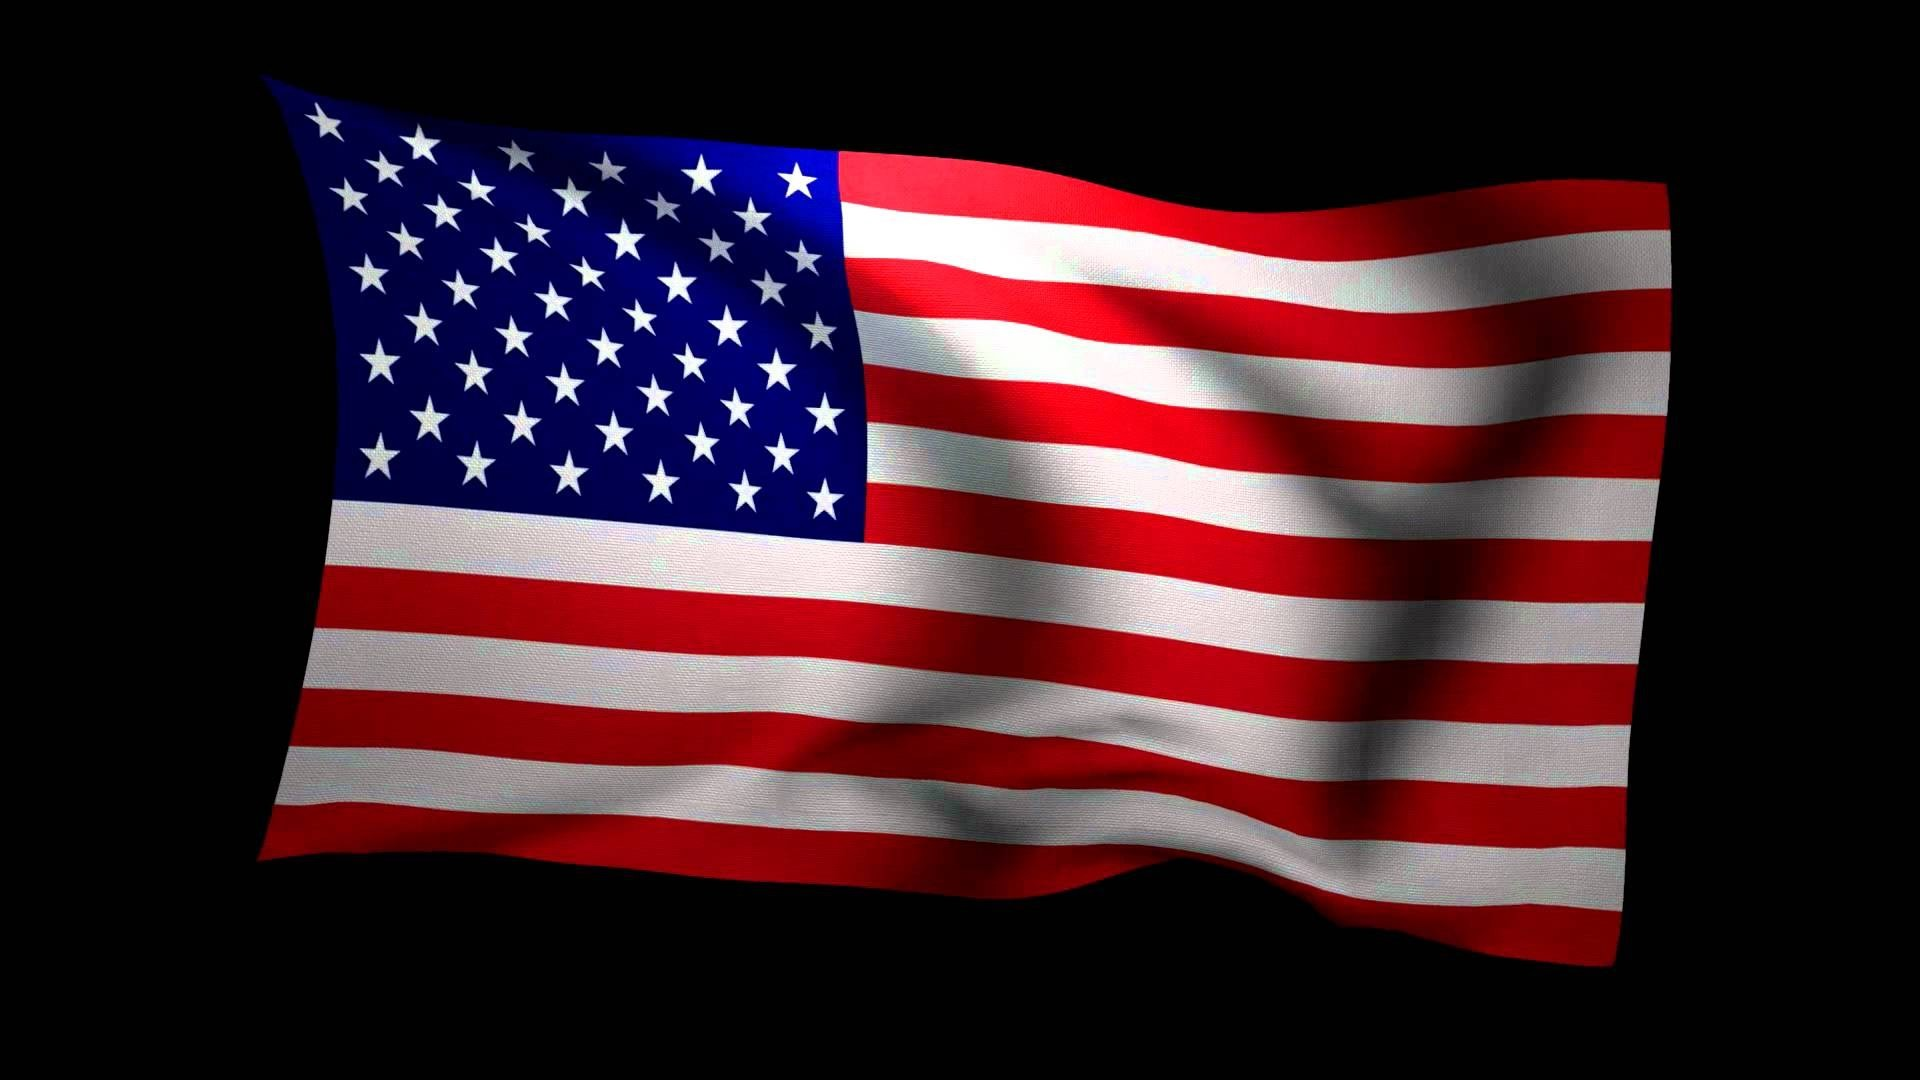 Flag Desktop Background: American Flag Wallpaper 1920x1080 (61+ Images